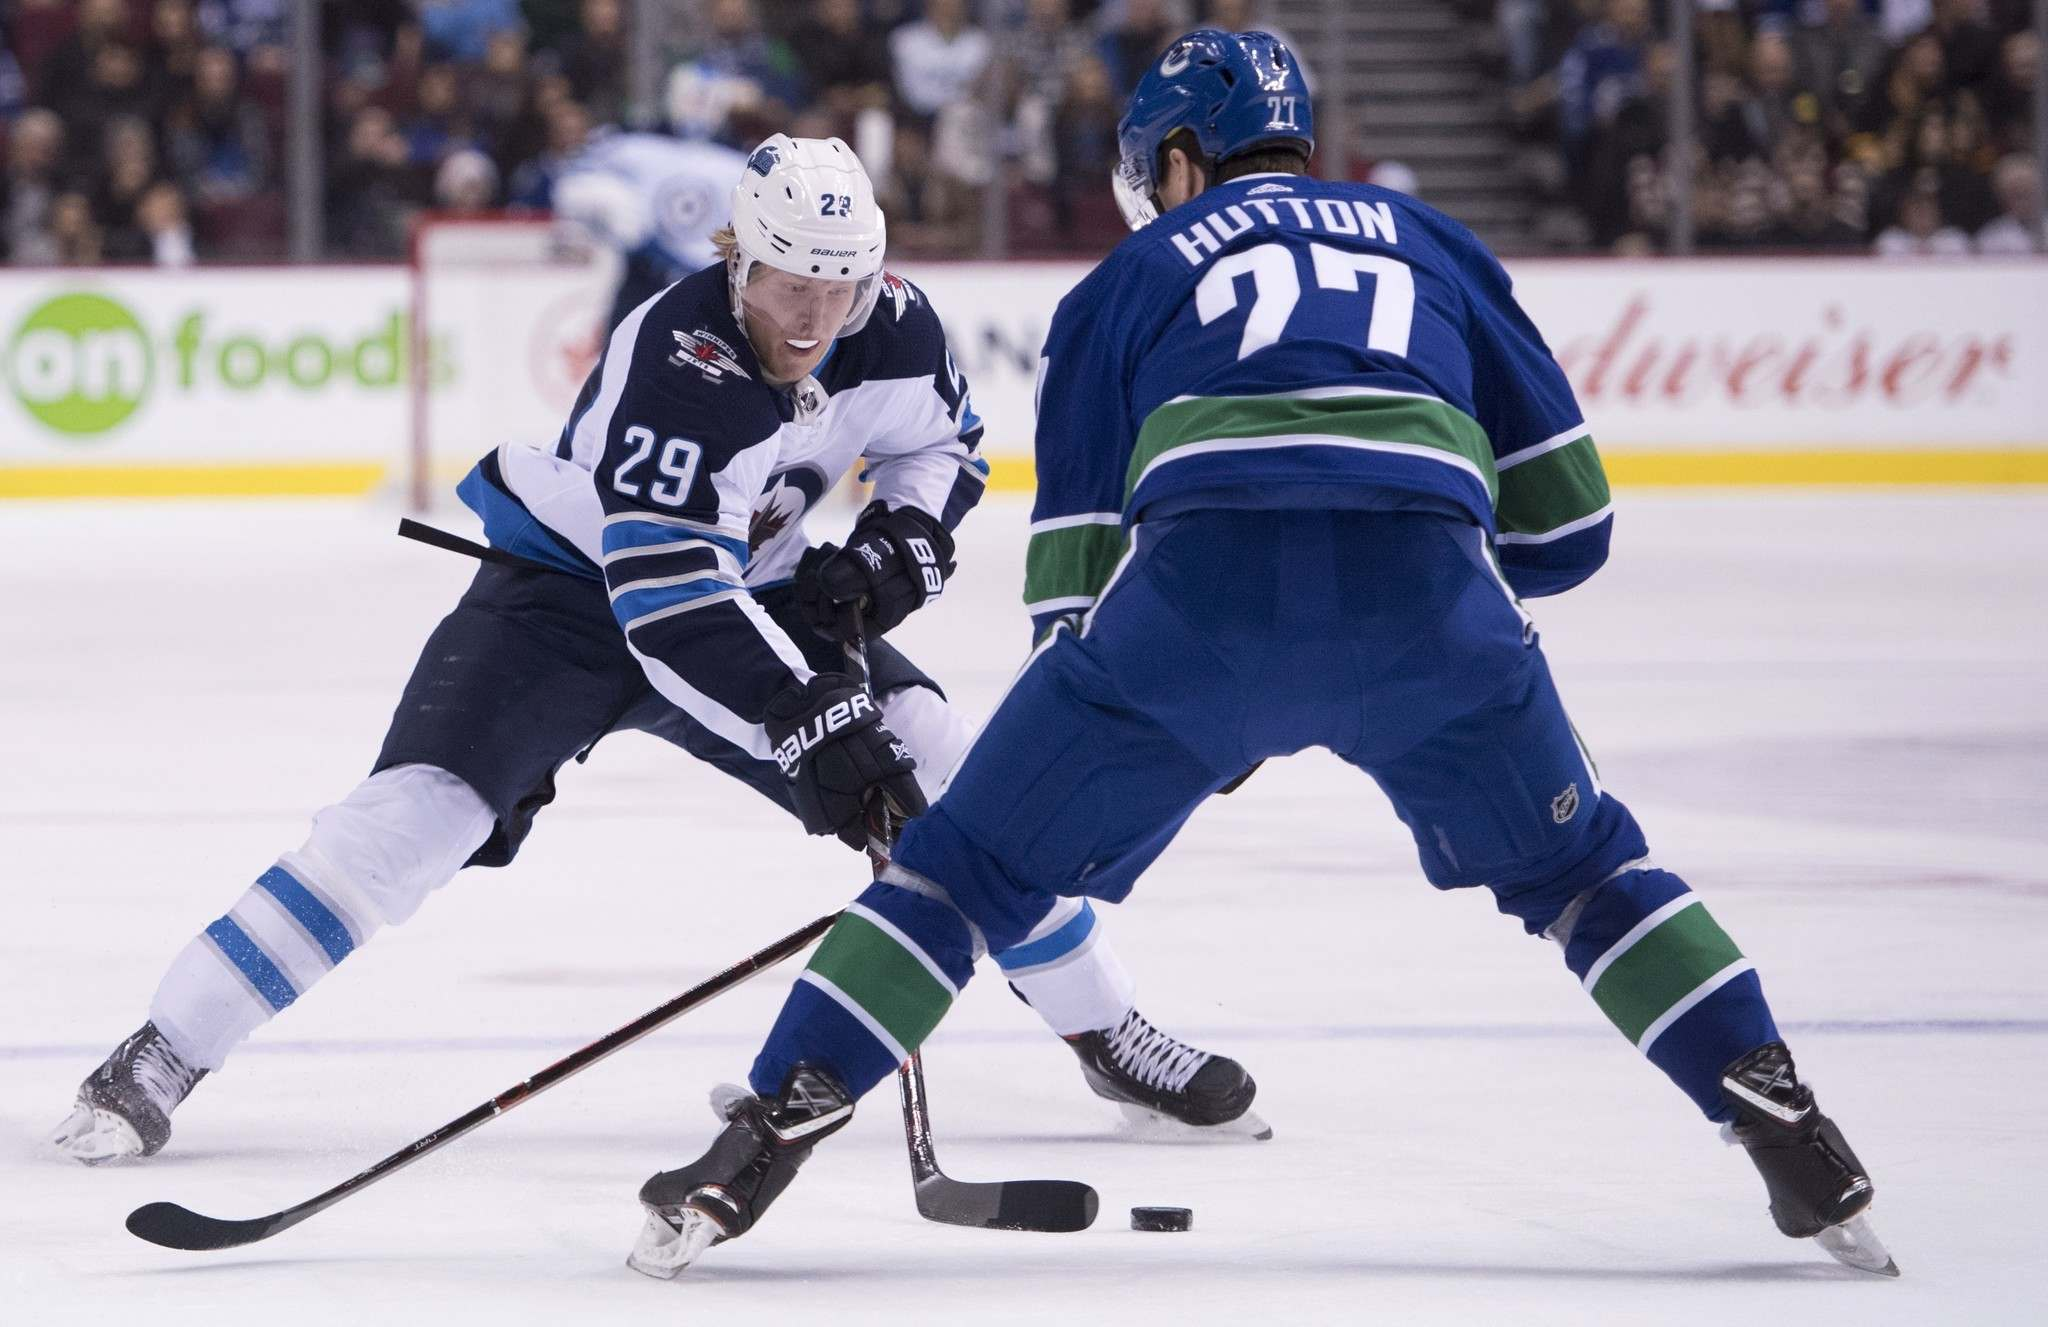 Winnipeg Jets right wing Patrik Laine (29) tries to get the puck past Vancouver Canucks defenceman Ben Hutton (27) during first-period NHL action at Rogers Arena in Vancouver last month.